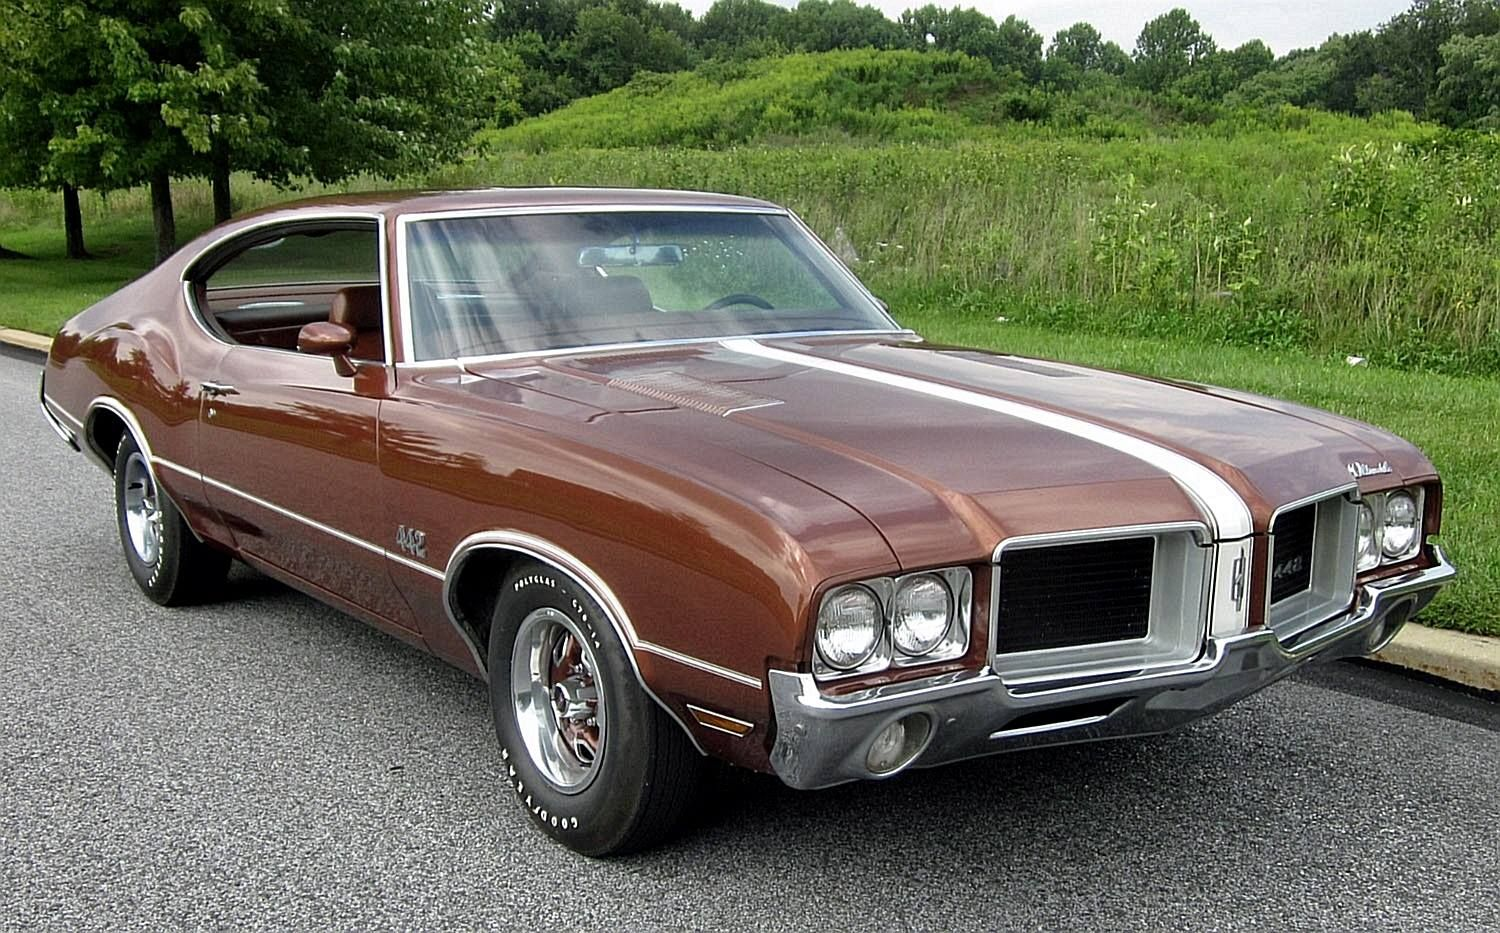 Gregg Levine Photos From Gregg Levine S Post Classic Cars Oldsmobile Car Images